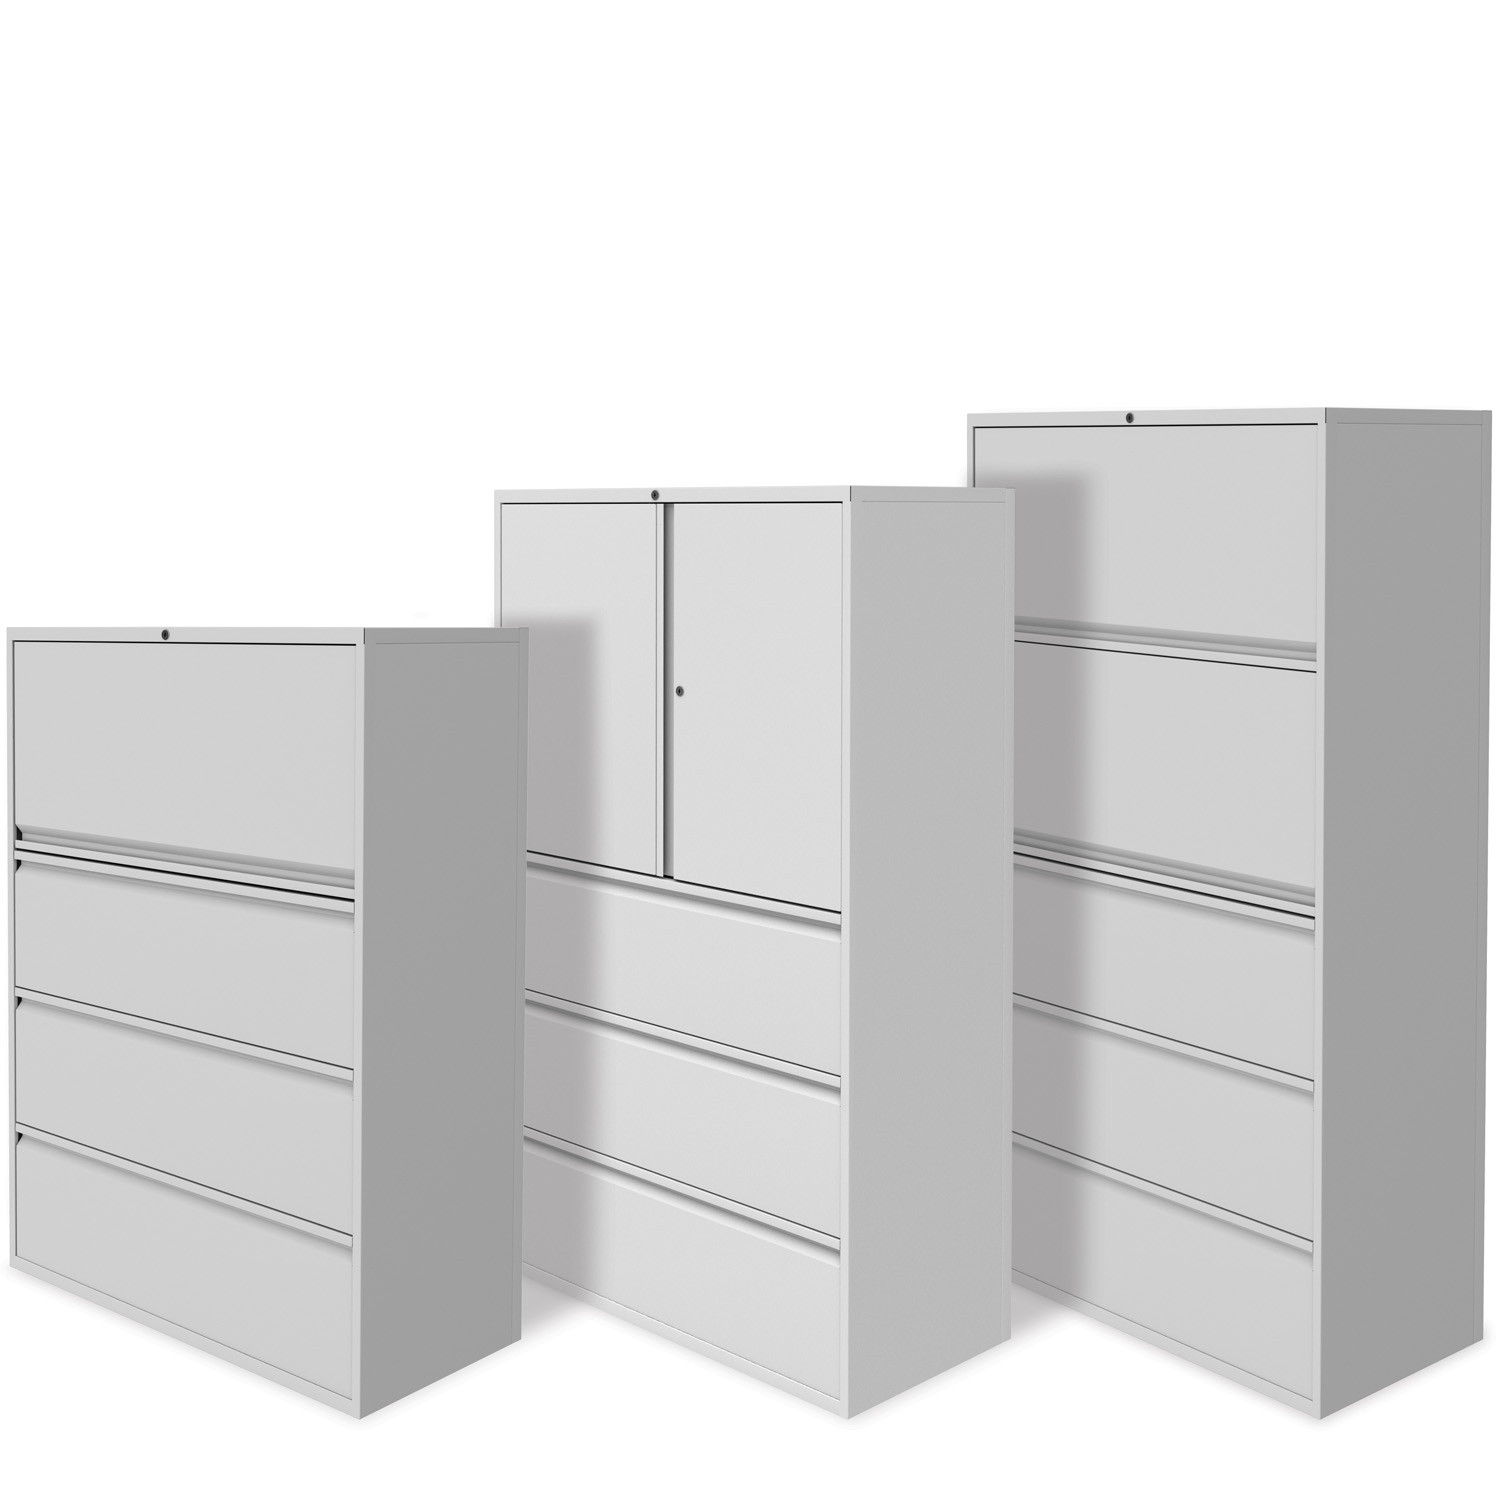 Freedom Combi:Store Office Cabinets Sizes